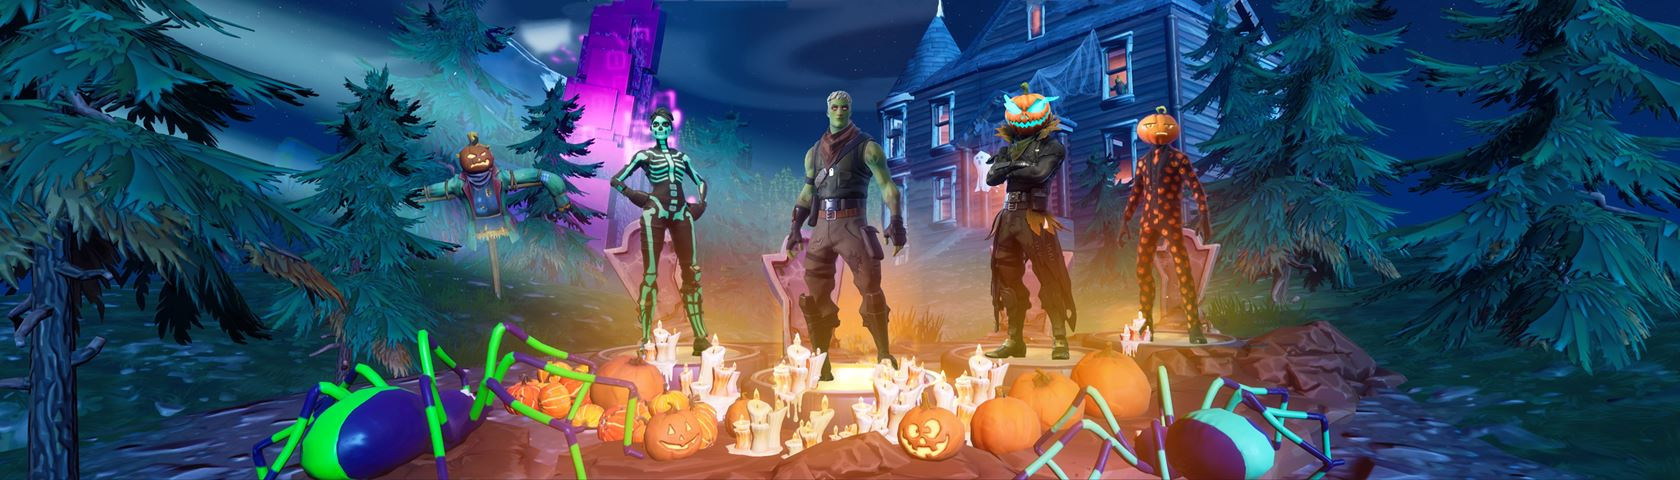 Fortnite Season 6 Halloween